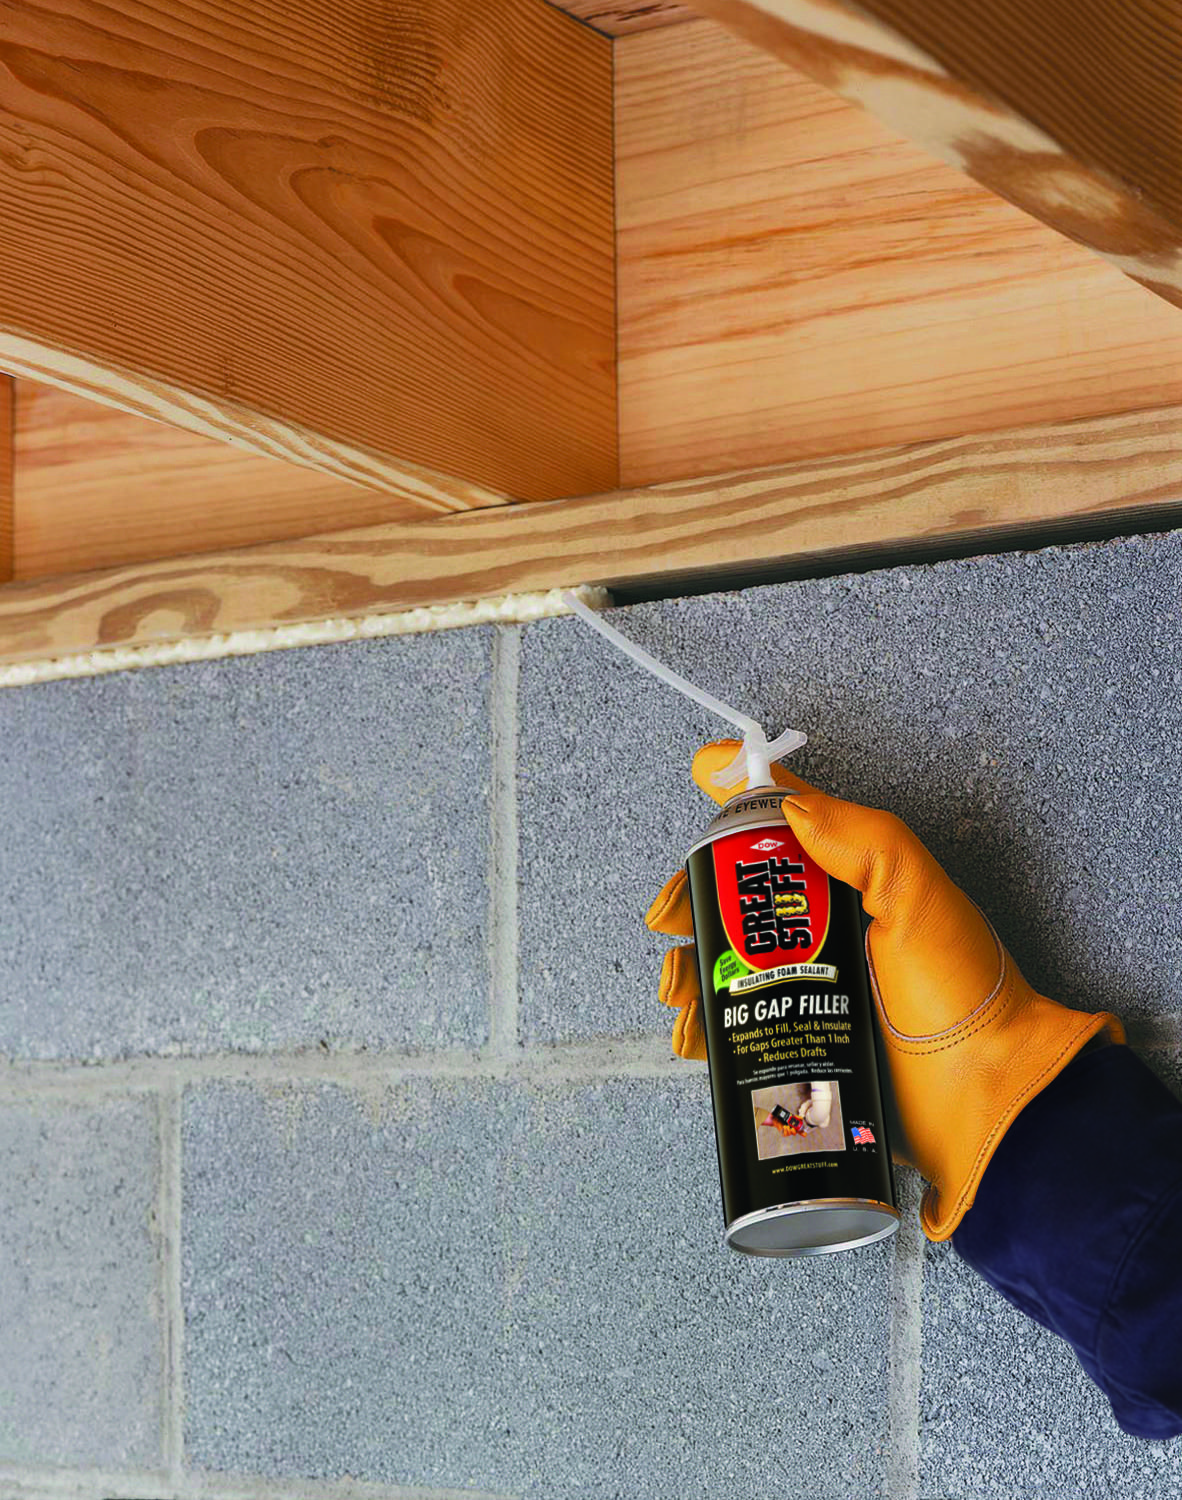 Fill Seal And Insulate Gaps Up To 3 Inches With Great Stuff Big Gap Filler Insulating Foam Sealant Basement Insulation Basement Ceiling Insulation Basement